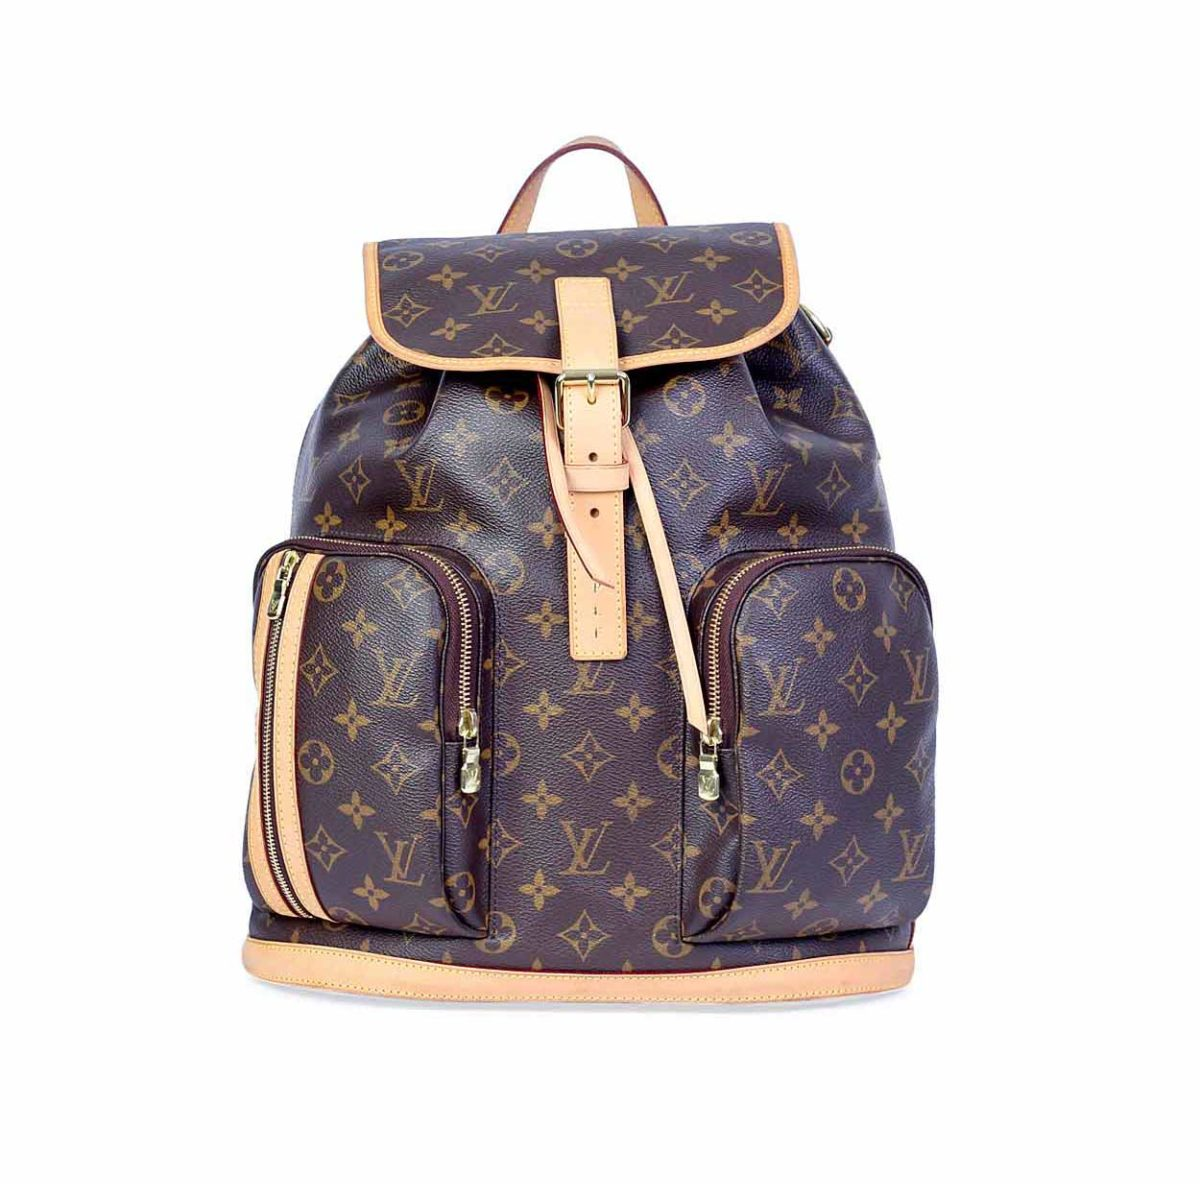 d8c9b44e7fb75 LOUIS VUITTON Monogram Bosphore